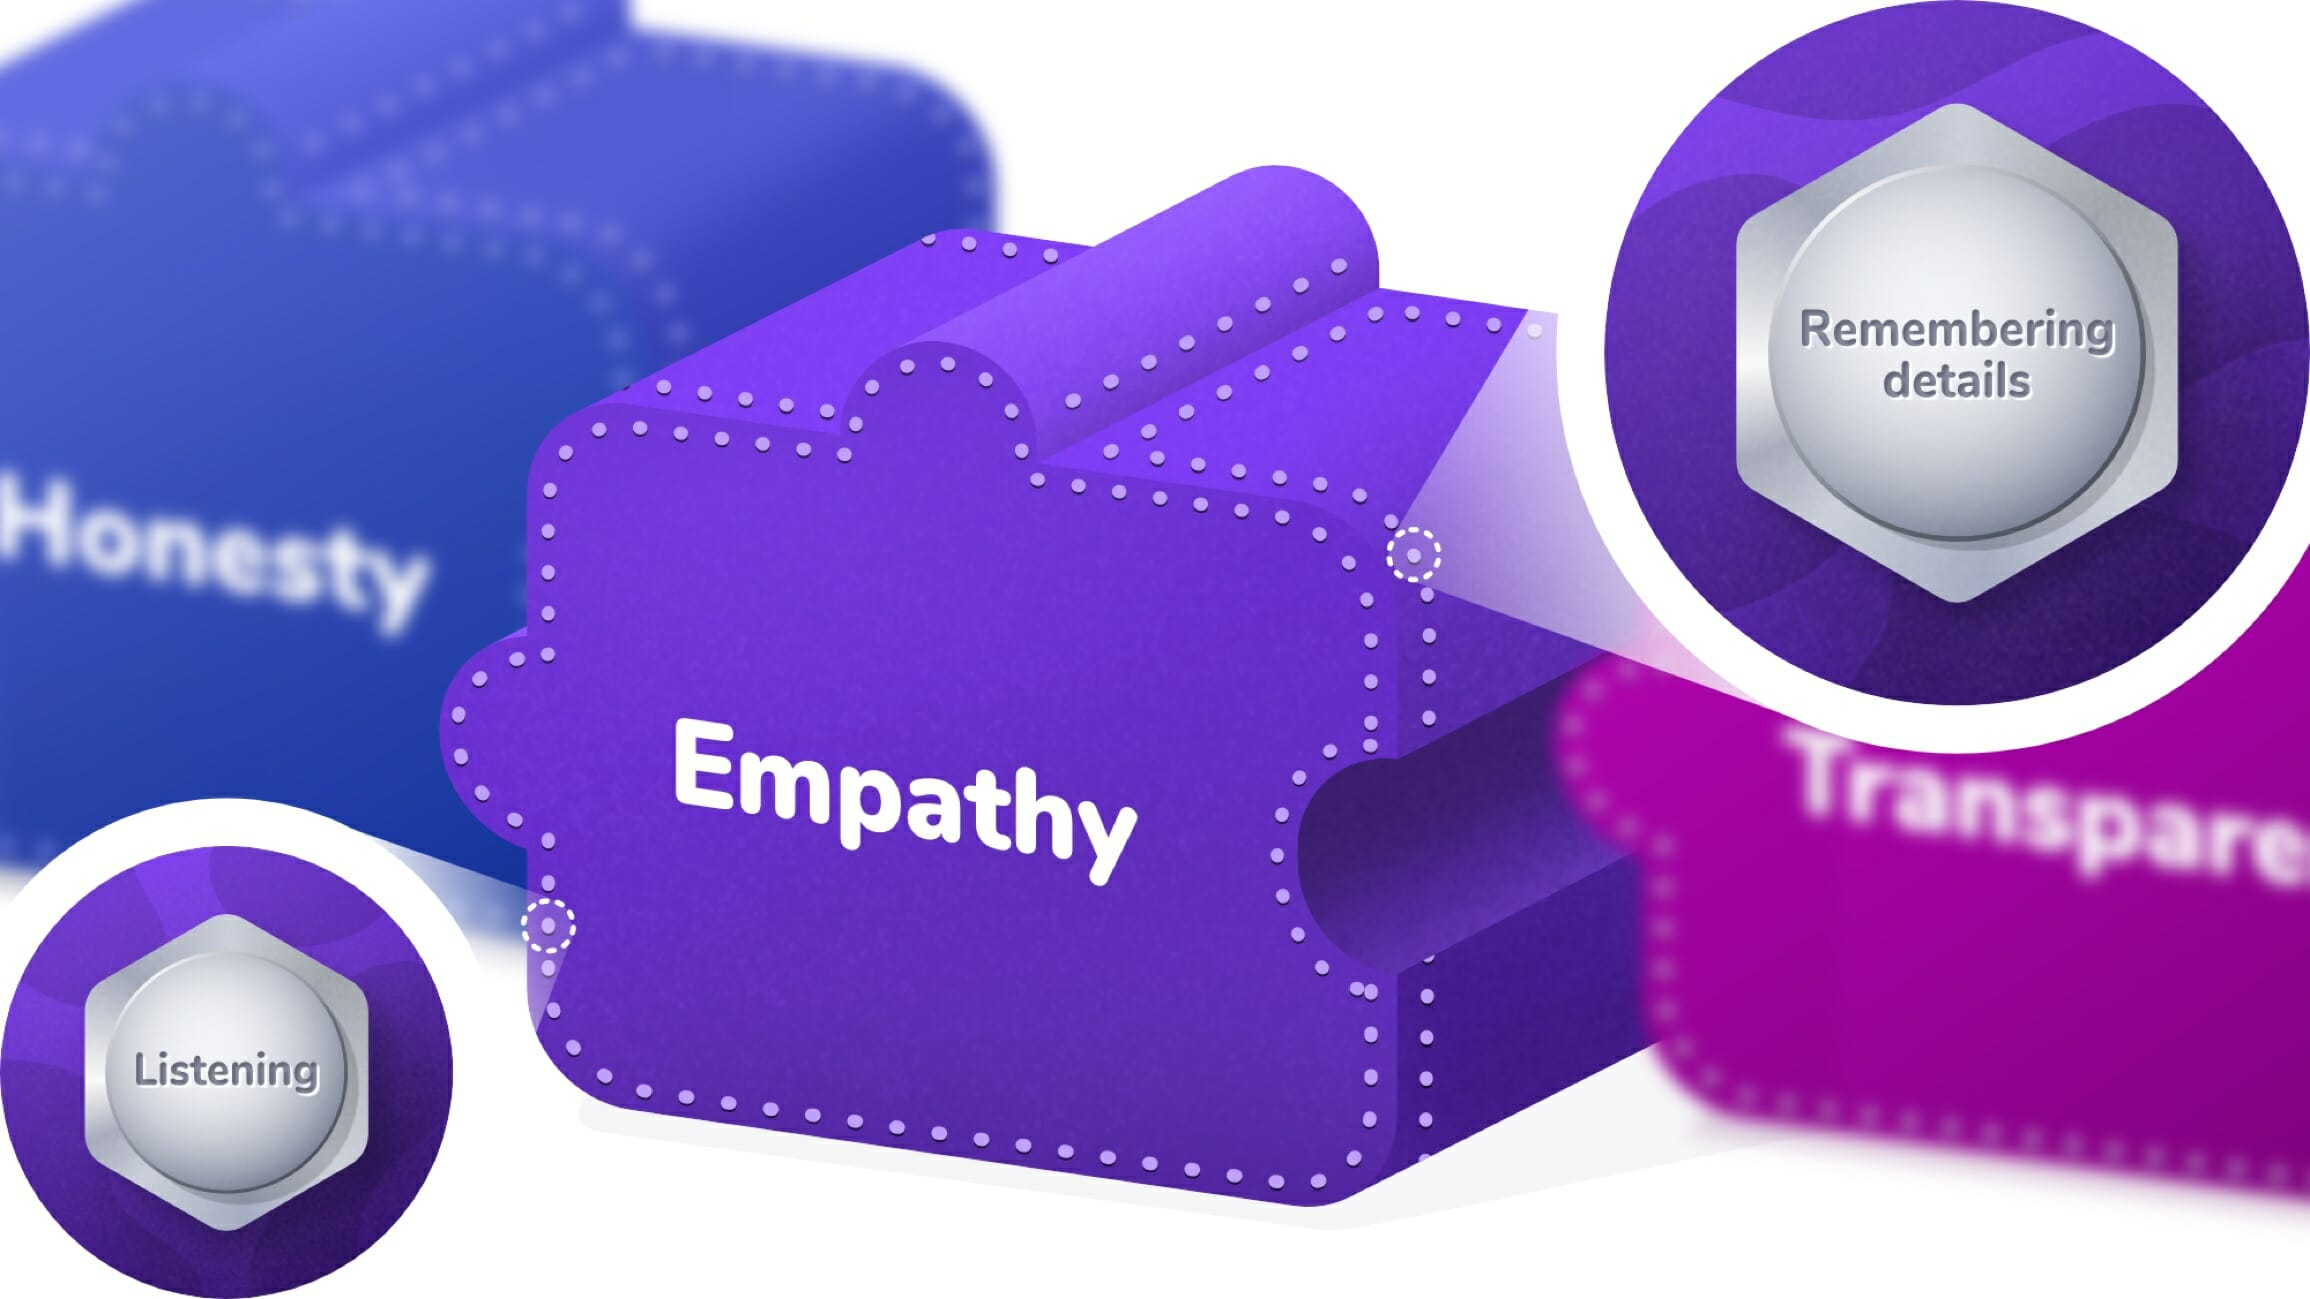 Listening is one of the most important aspects for management to leverage to cultivate organizational culture because this creates empathy.